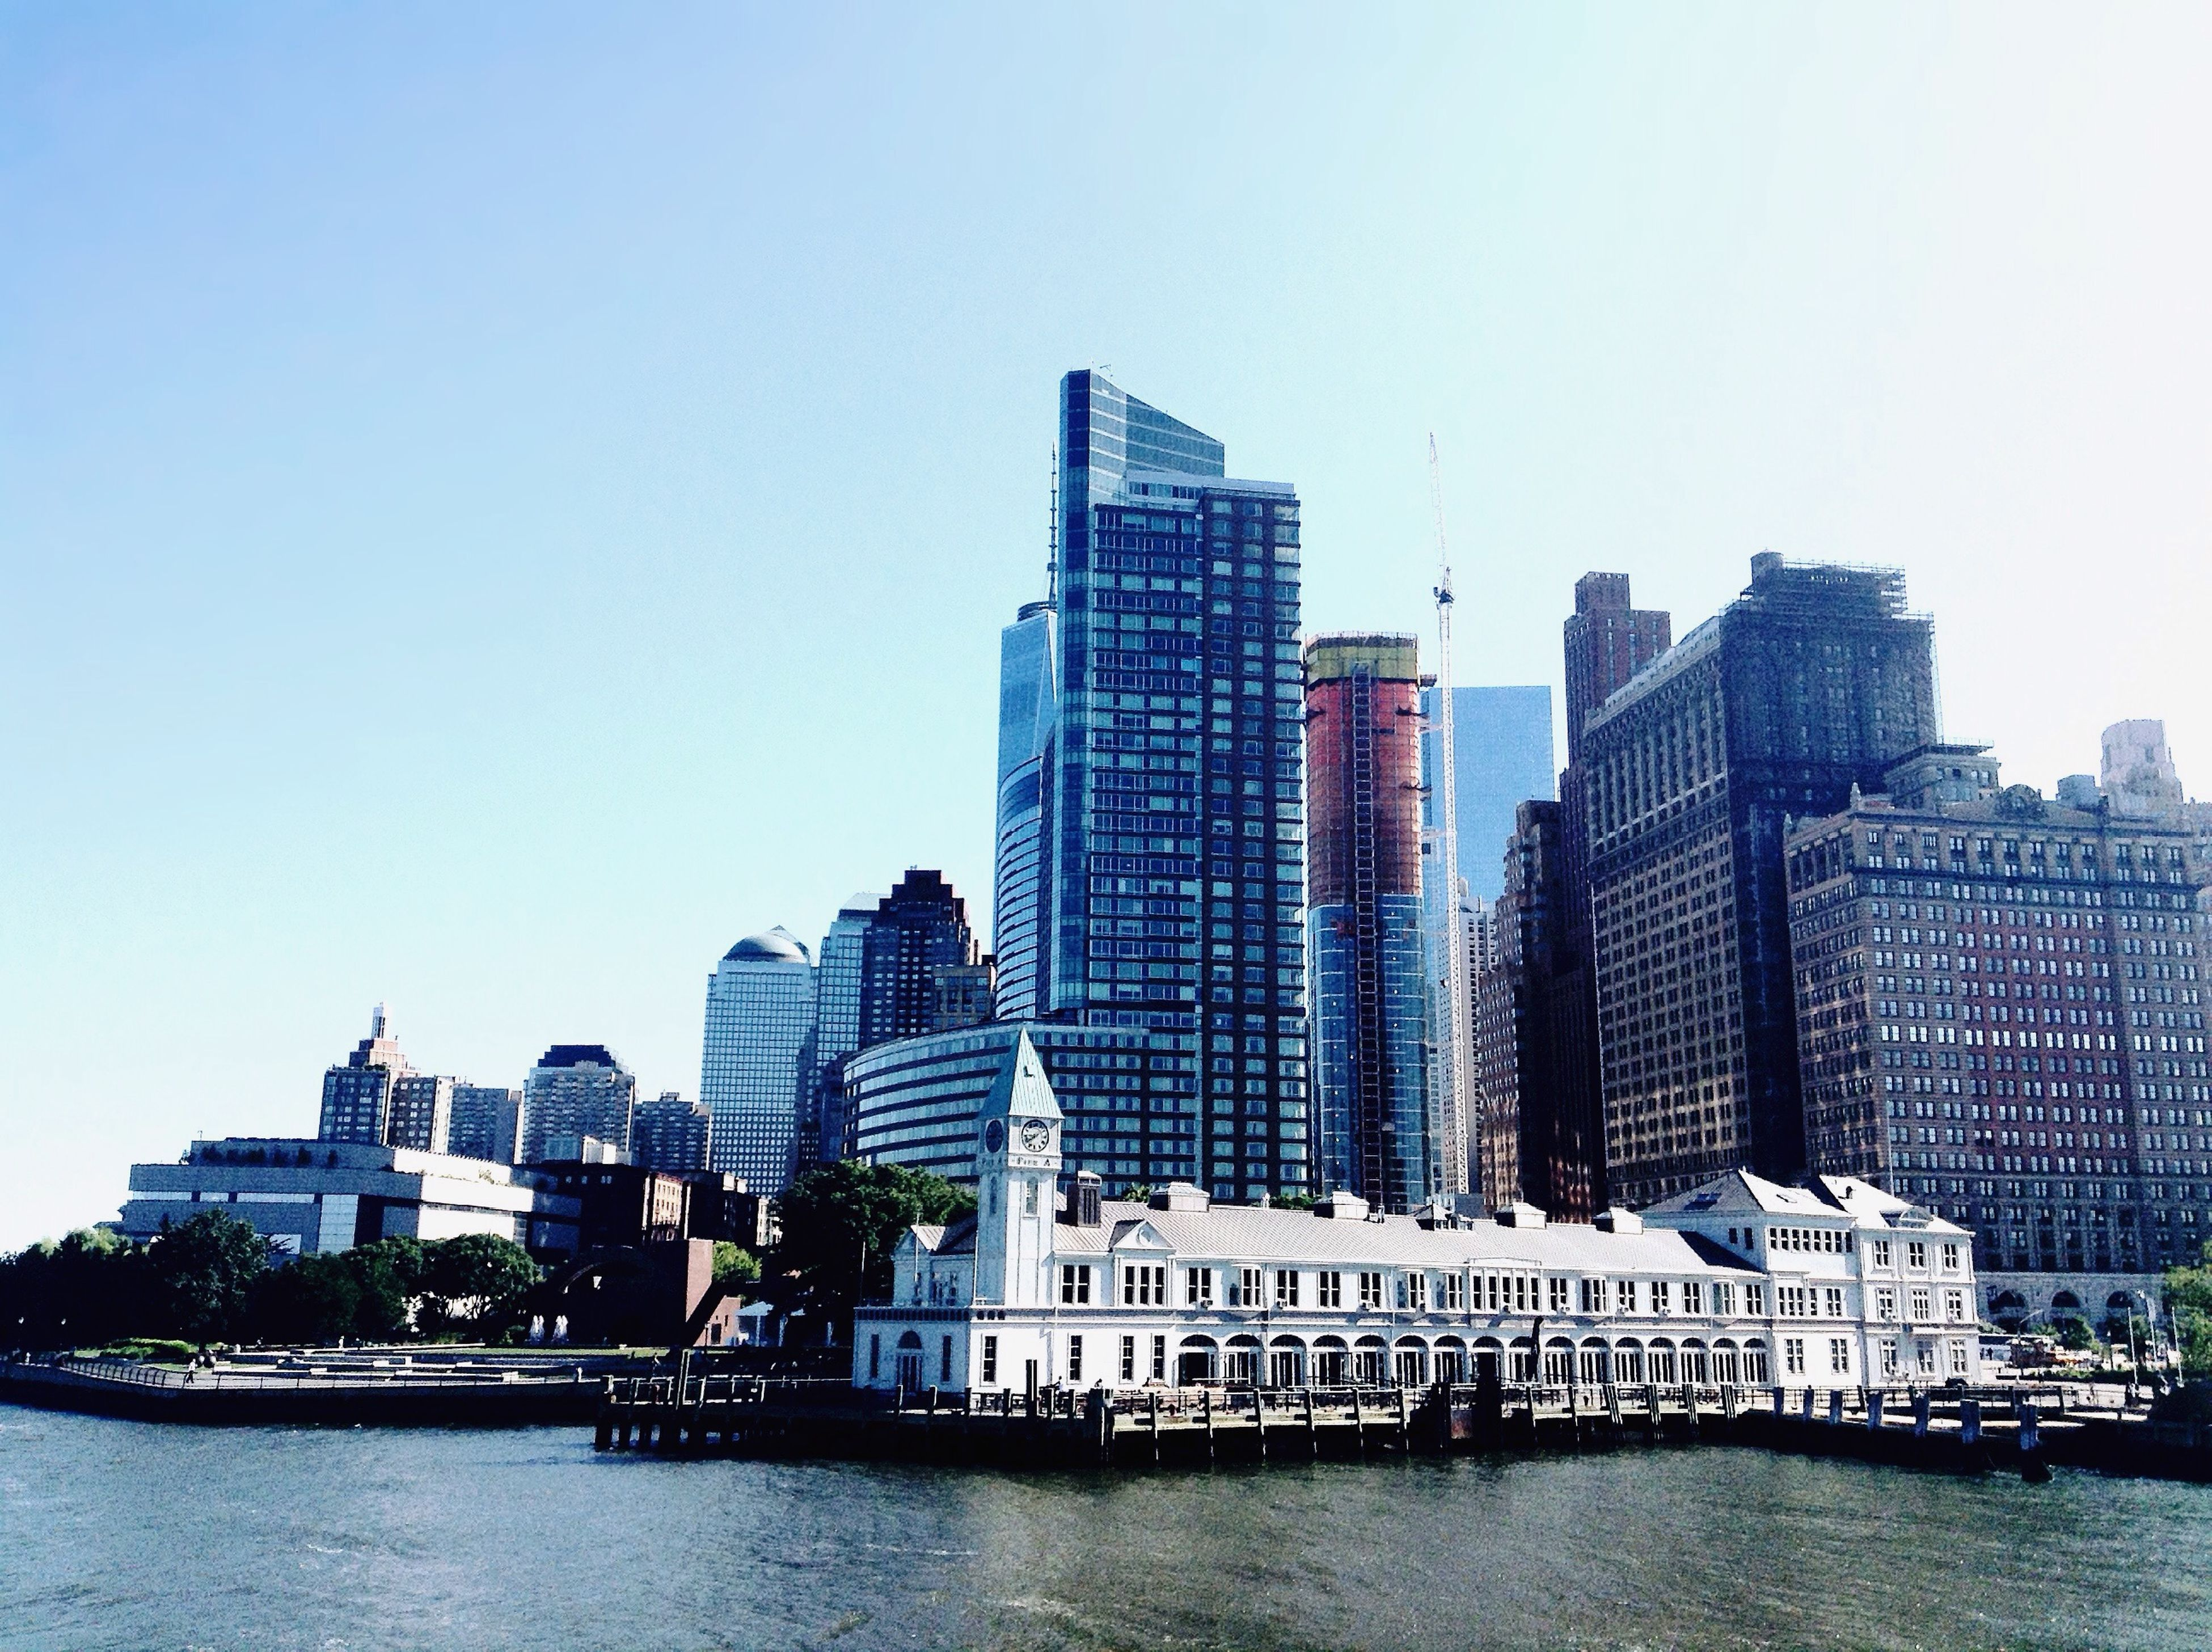 building exterior, waterfront, architecture, water, clear sky, built structure, city, skyscraper, copy space, cityscape, urban skyline, office building, river, modern, tall - high, nautical vessel, tower, sea, financial district, skyline